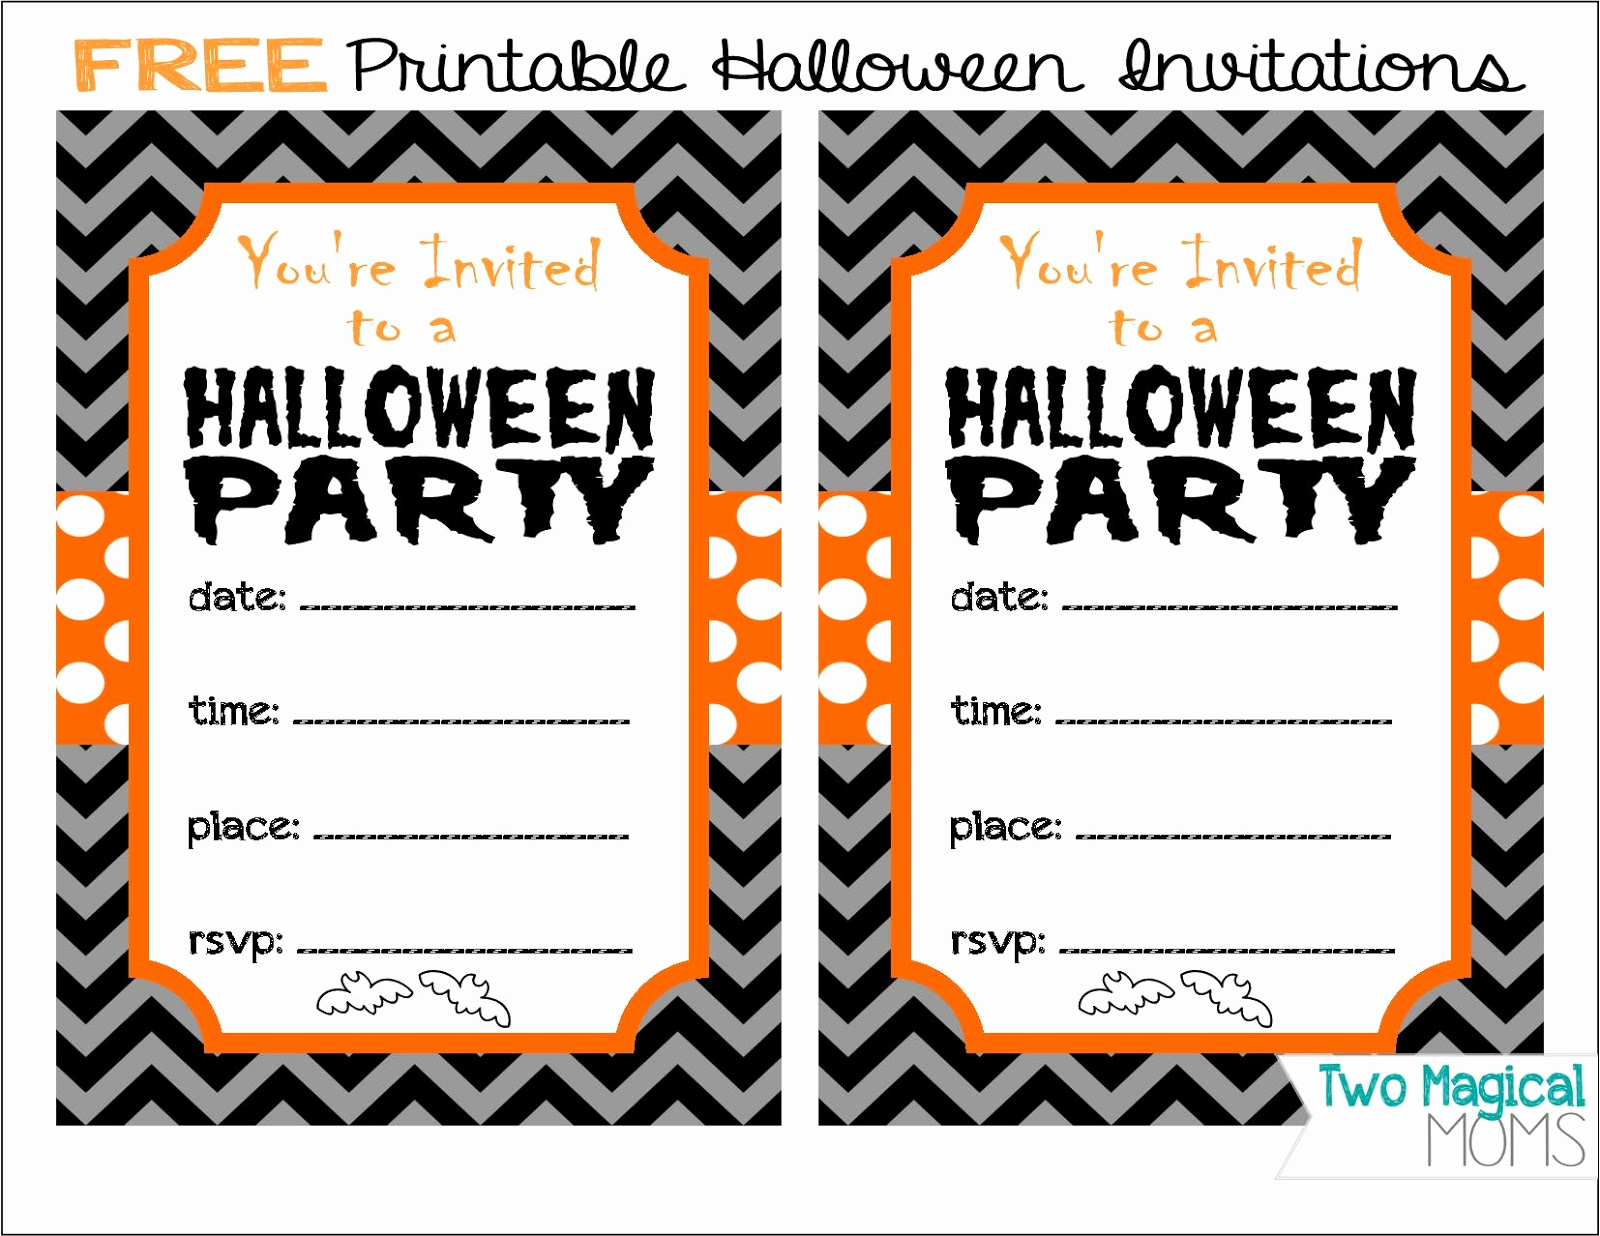 Free Halloween Invitation Printables Best Of Two Magical Moms Free Printable Halloween Invitations